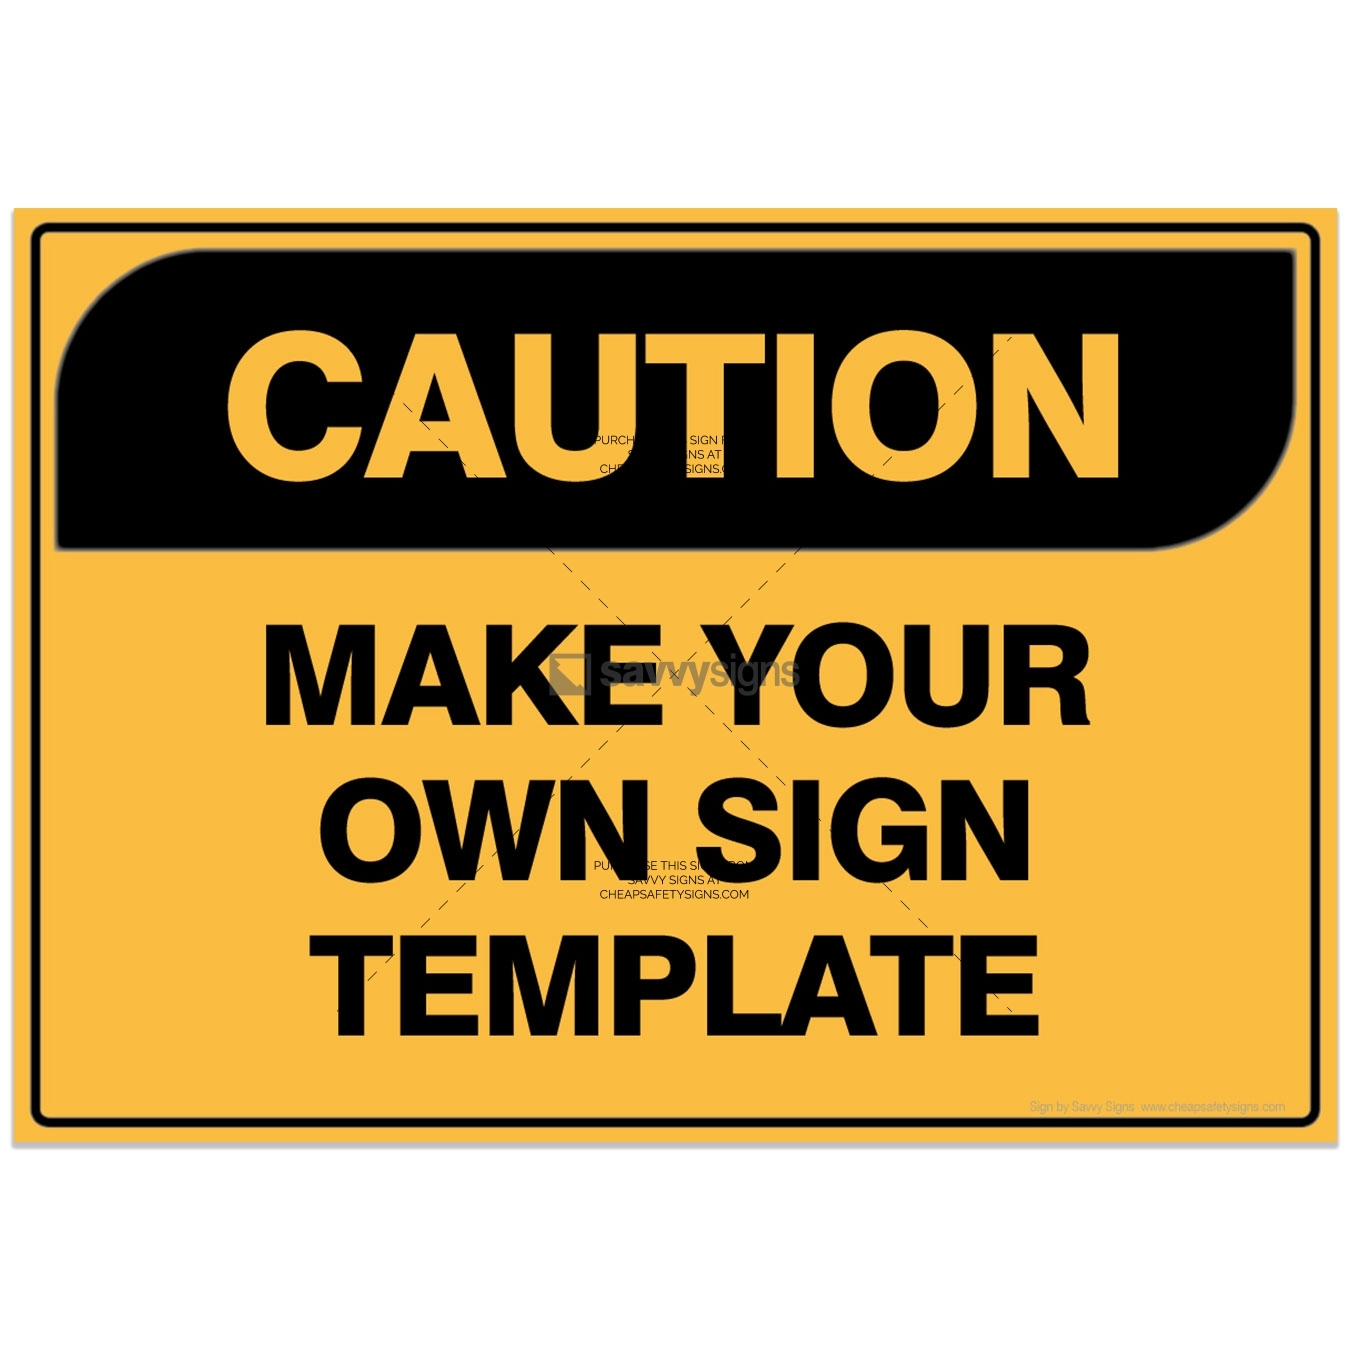 SSCAU3043-CAUTION-Workplace-Safety-Signs_Savvy-Signs_v4